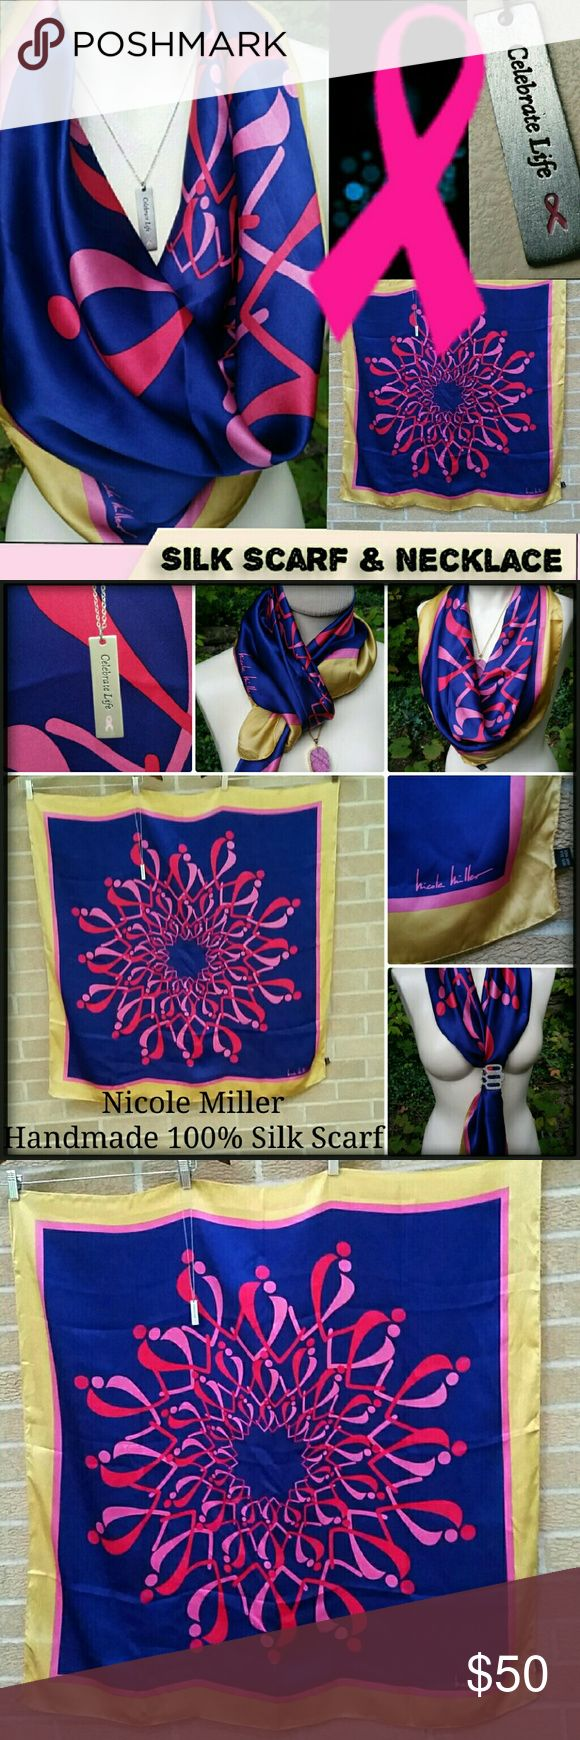 "Vintage Pink Ribbon Necklace & Nicole Miller Scarf Pink Ribbon Scarf & Necklace - you get both! :-)  The scarf is an exclusive Nicole Miller Design that was Not available in stores! (VERY Rare!)  One-of-a-kind (OOAK) silk scarf features an original Nicole Miller design on high quality 100% silk.  Stunning, vivid colors - a richness in hue that only silk can hold :-) This scarf is HANDMADE - hand rolled, hand-stitched edging.  Extra large, versatile size - it measures 36x35"".  Necklace…"